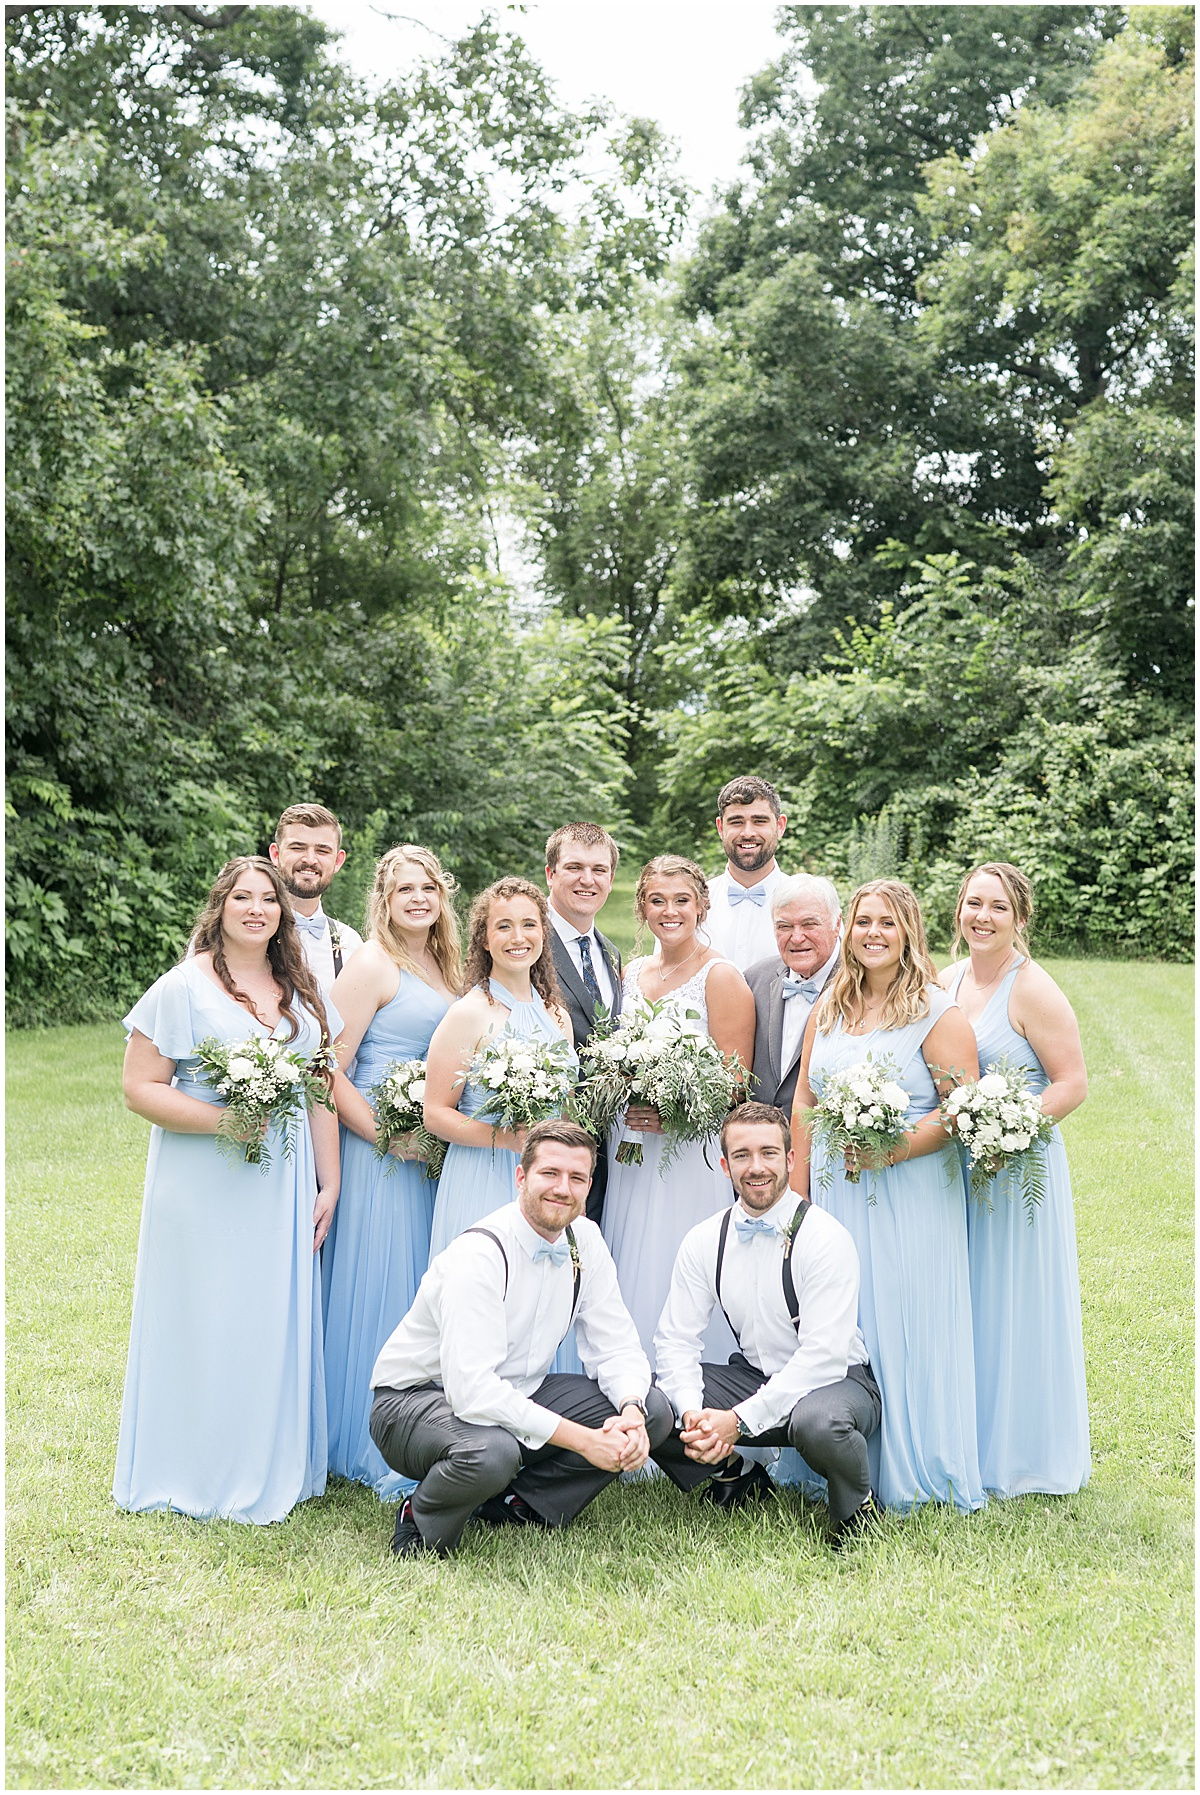 Wedding party photos at a Hawk Point Acres Wedding in Anderson, Indiana